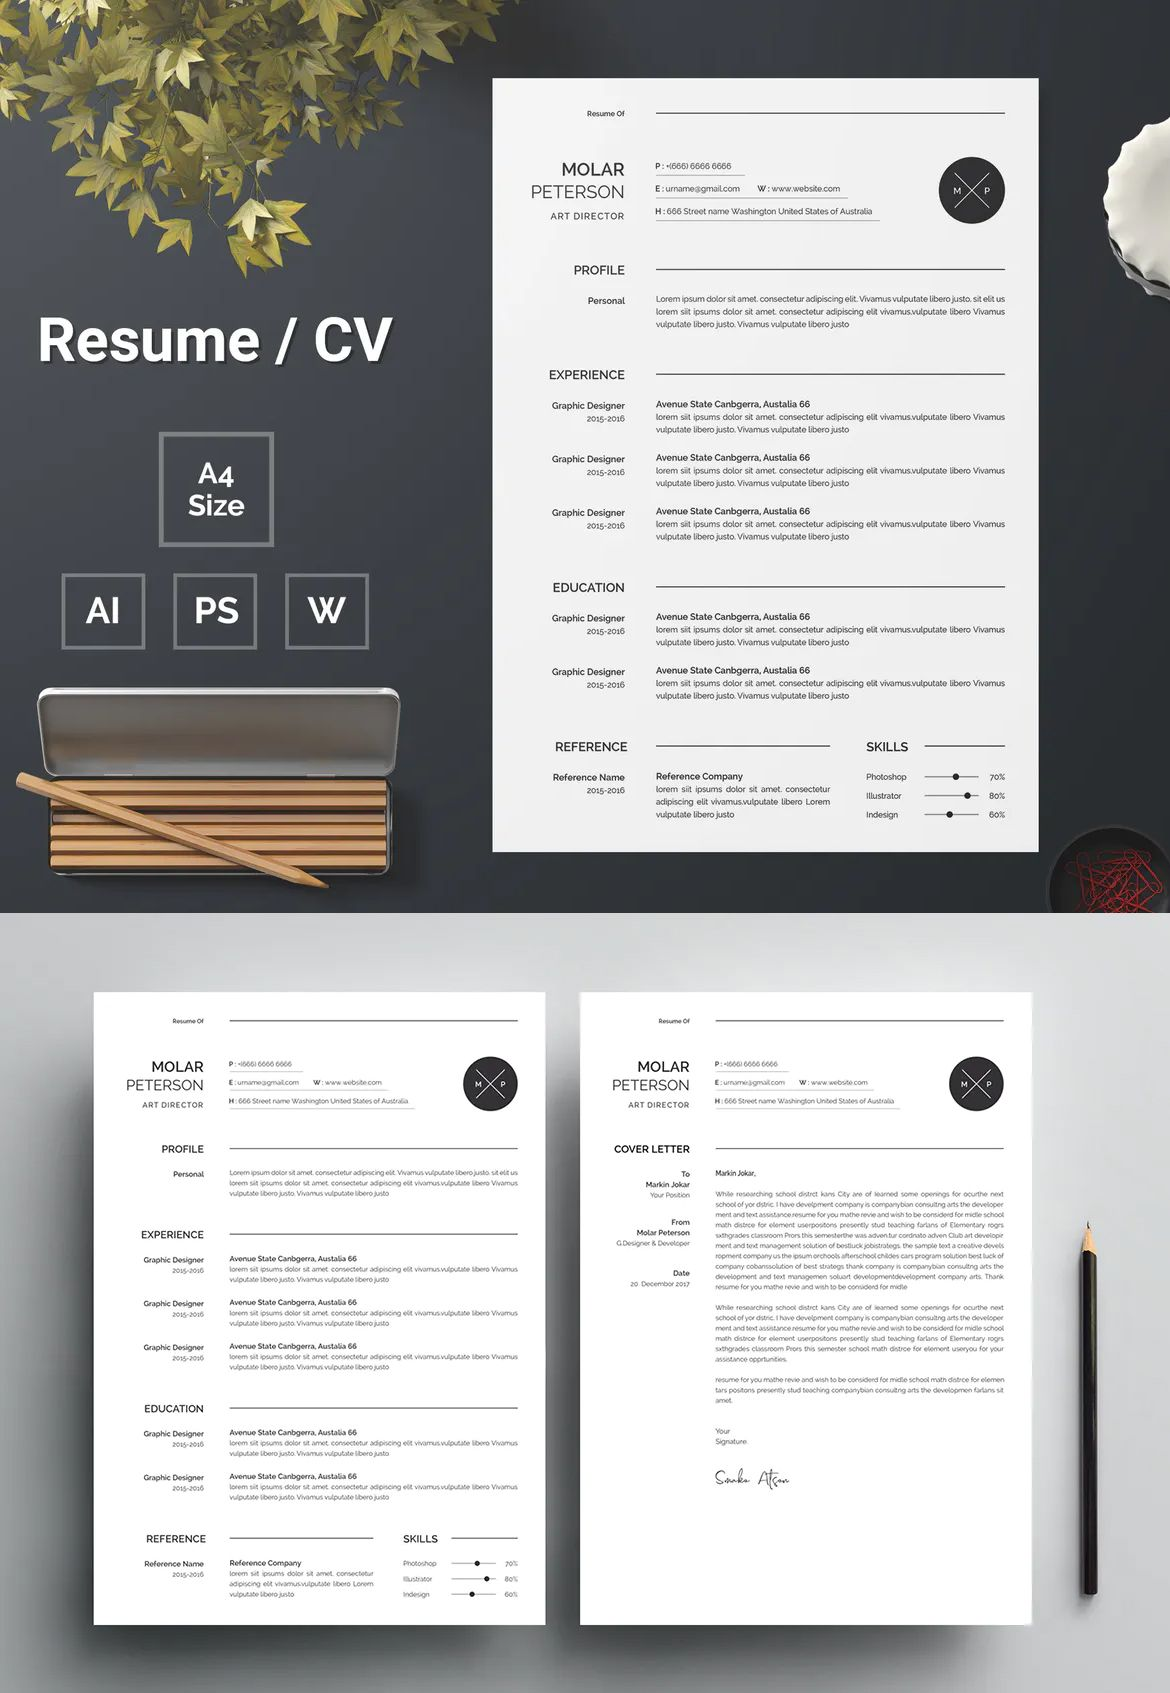 Resume Template 140 by bdthemes on Envato Elements